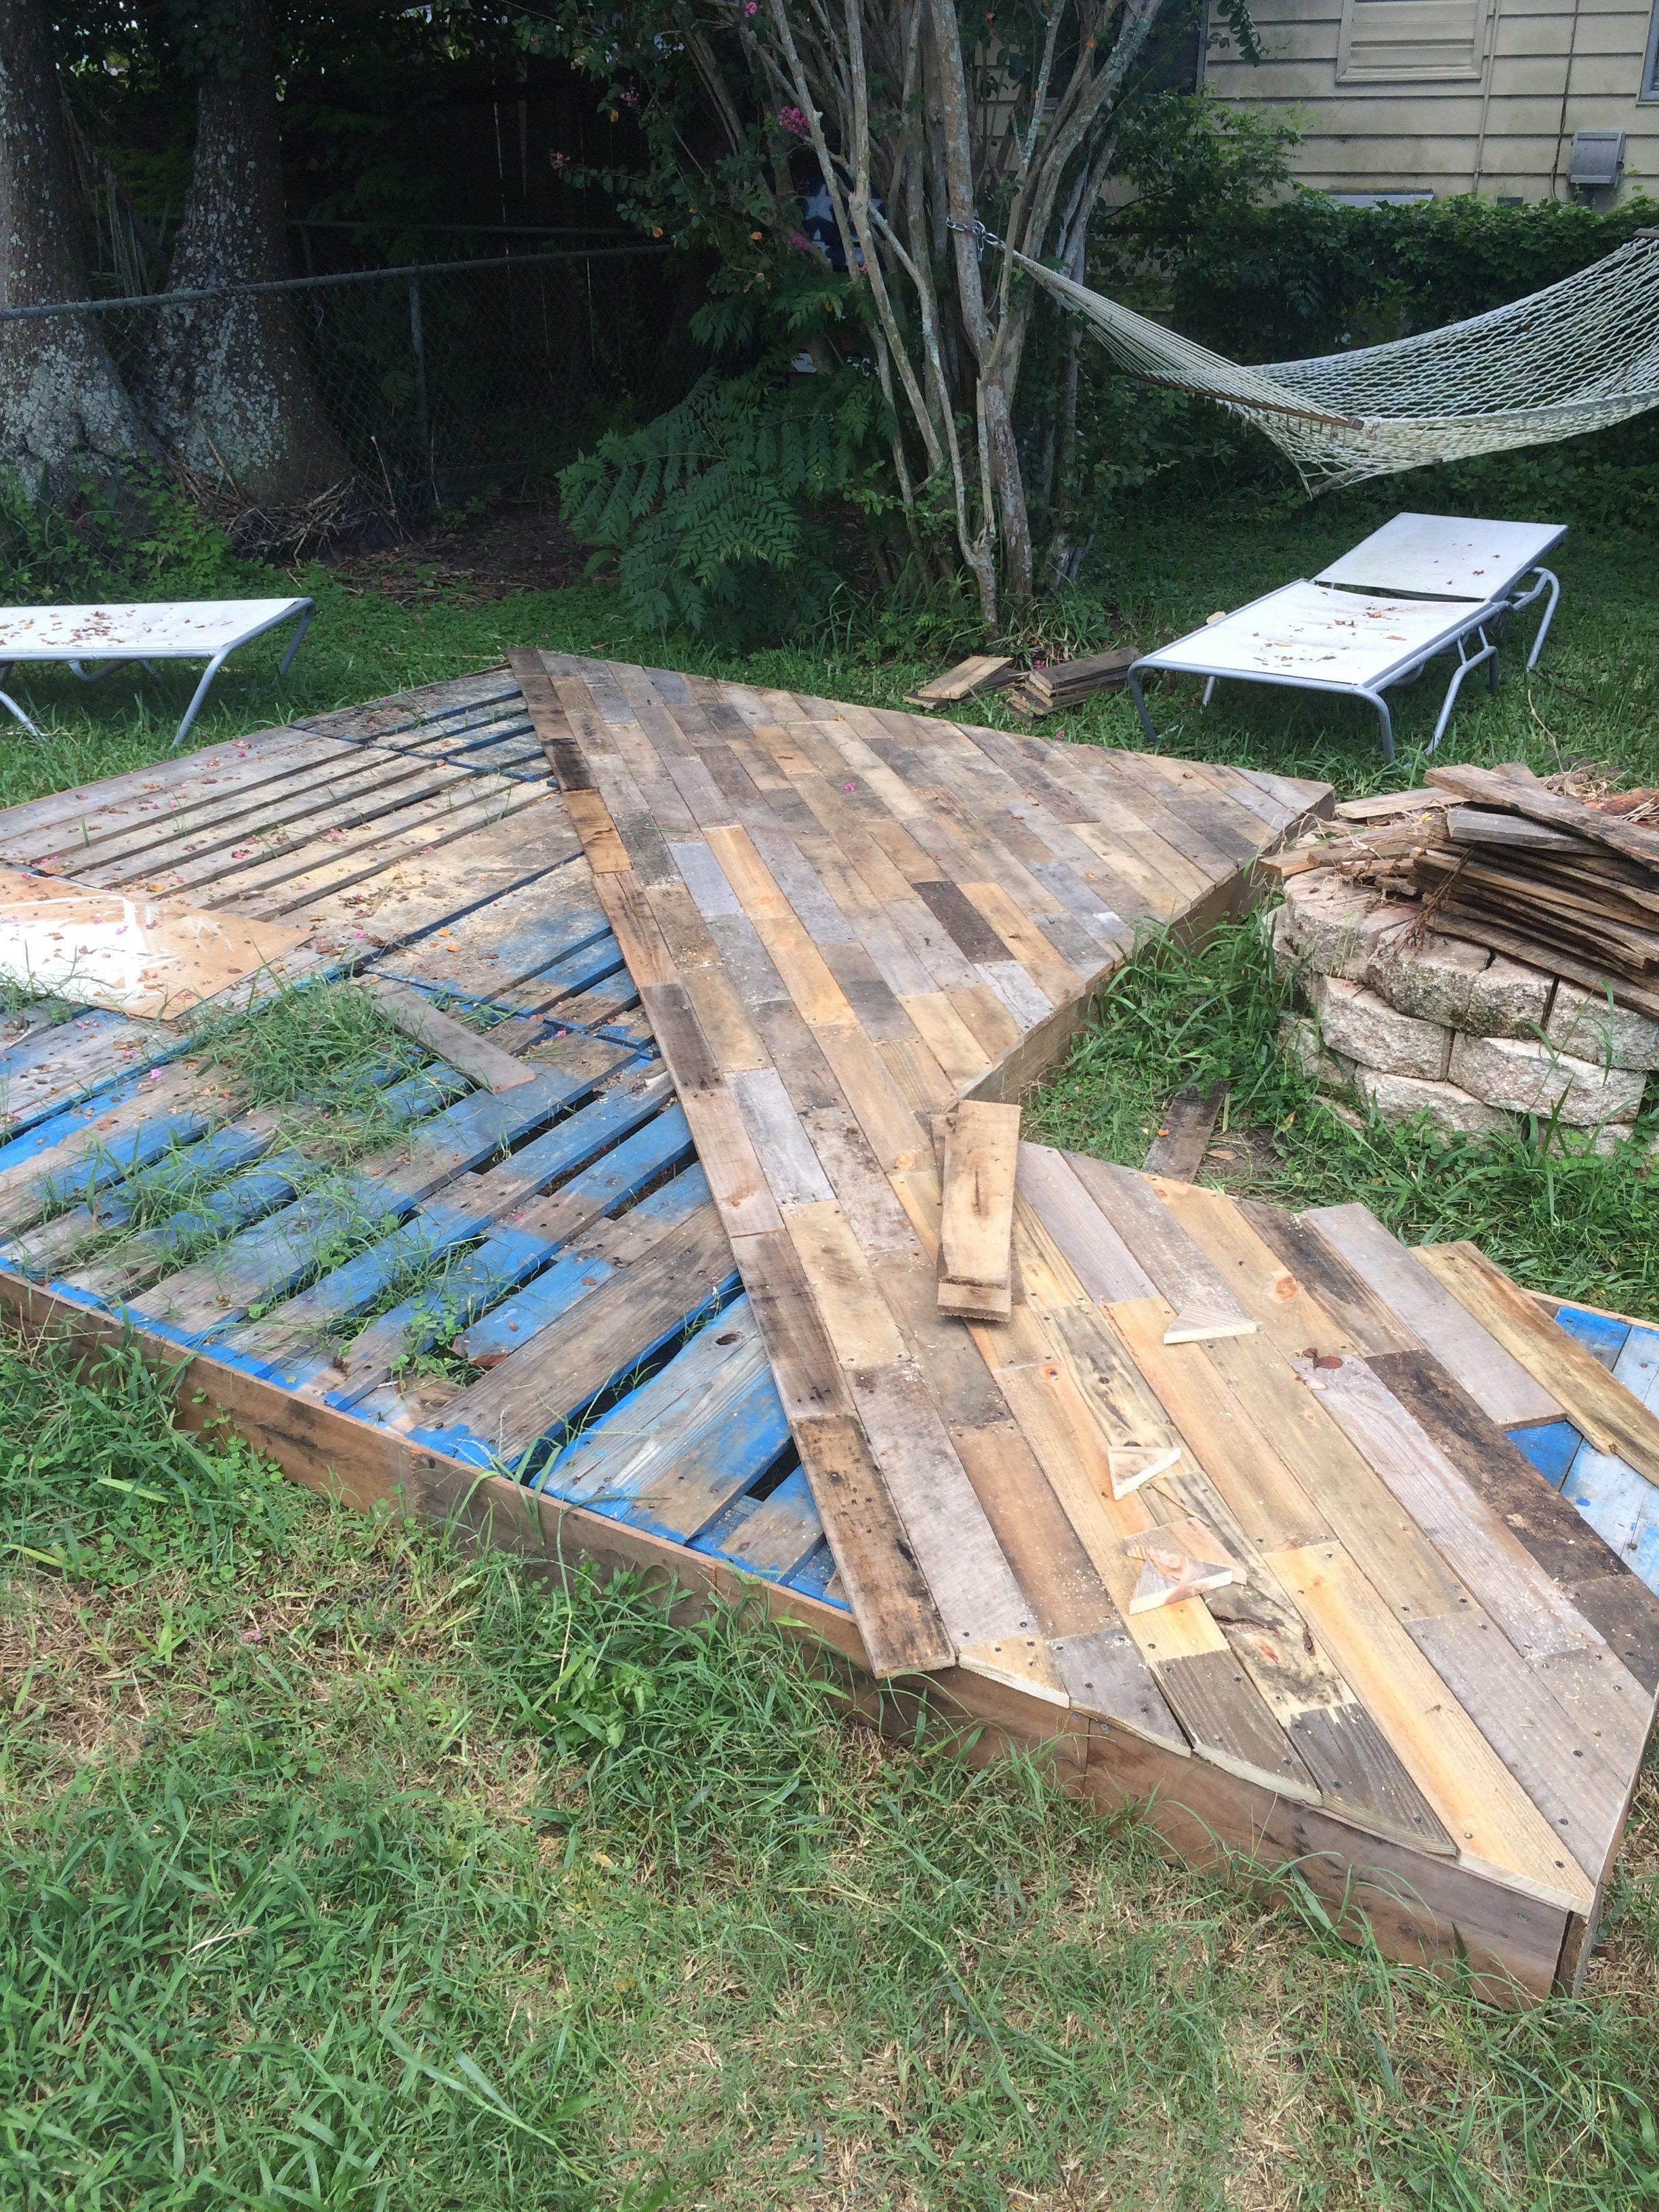 Patio Deck Out Of 25 Wooden Pallets Patio Diy Patio Pallet